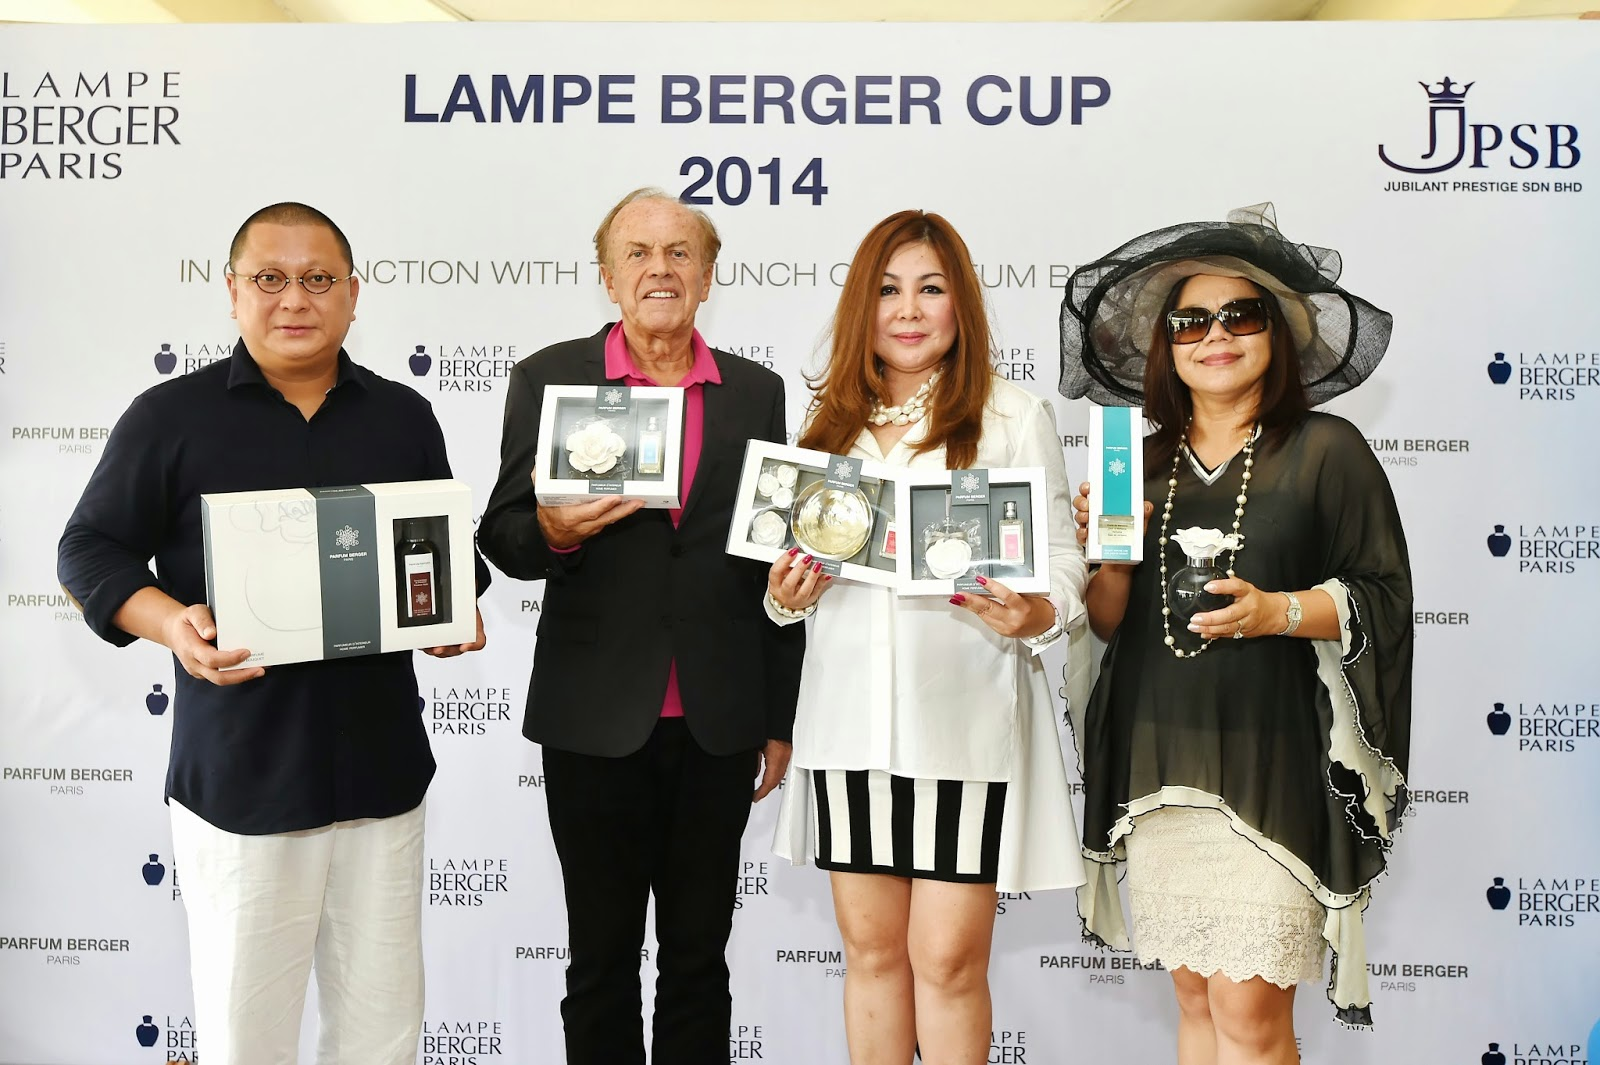 Kee Hua Chee Live!: LAMPE BERGER MALAYSIA UNDER DATO JULIE LIM HOSTS ...